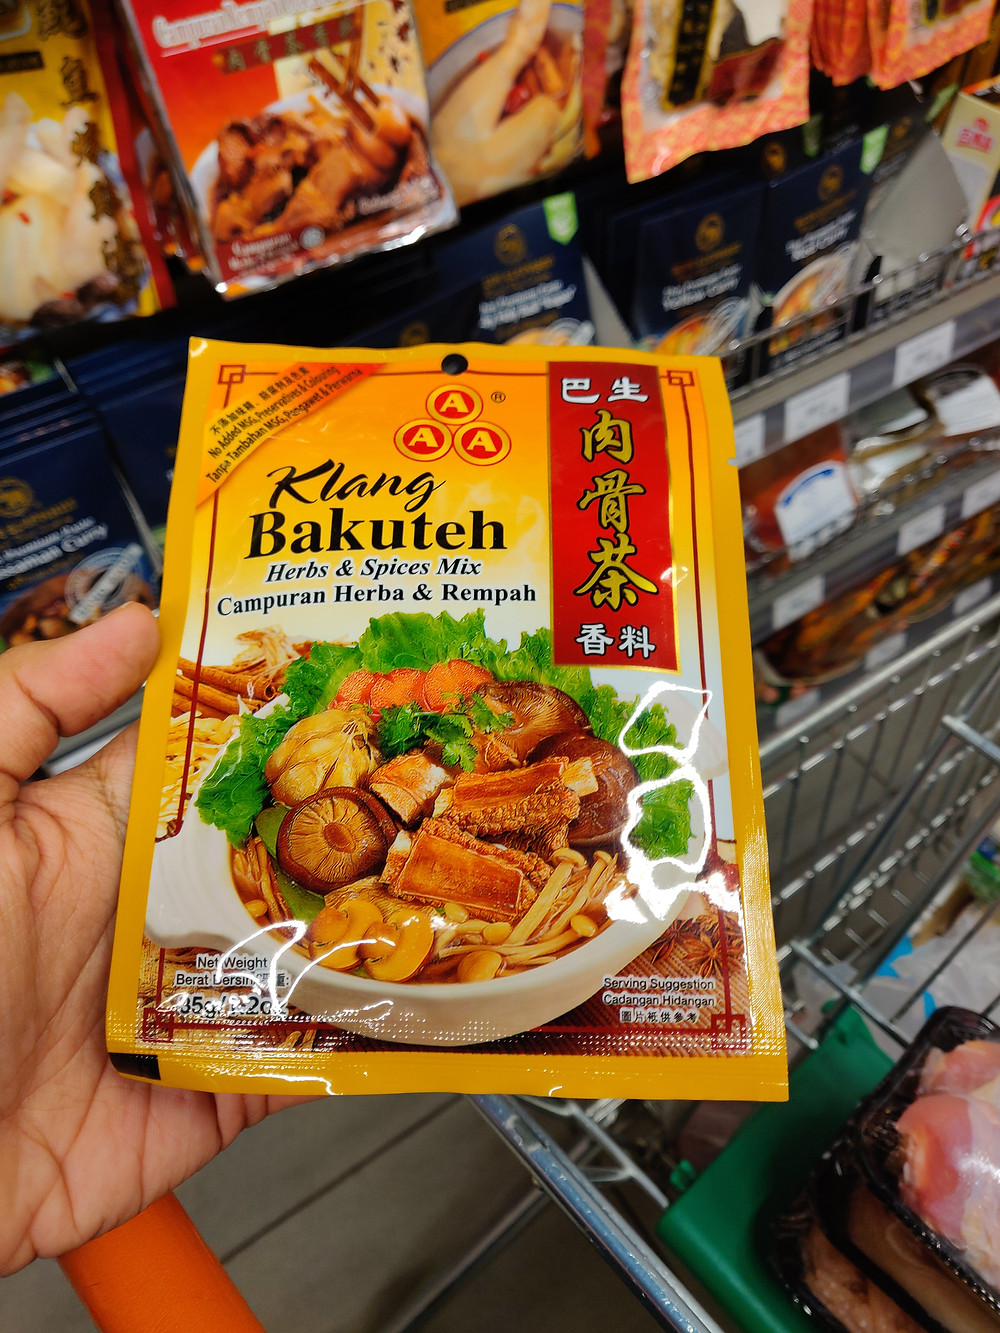 Bak kut teh herbs and spices mix